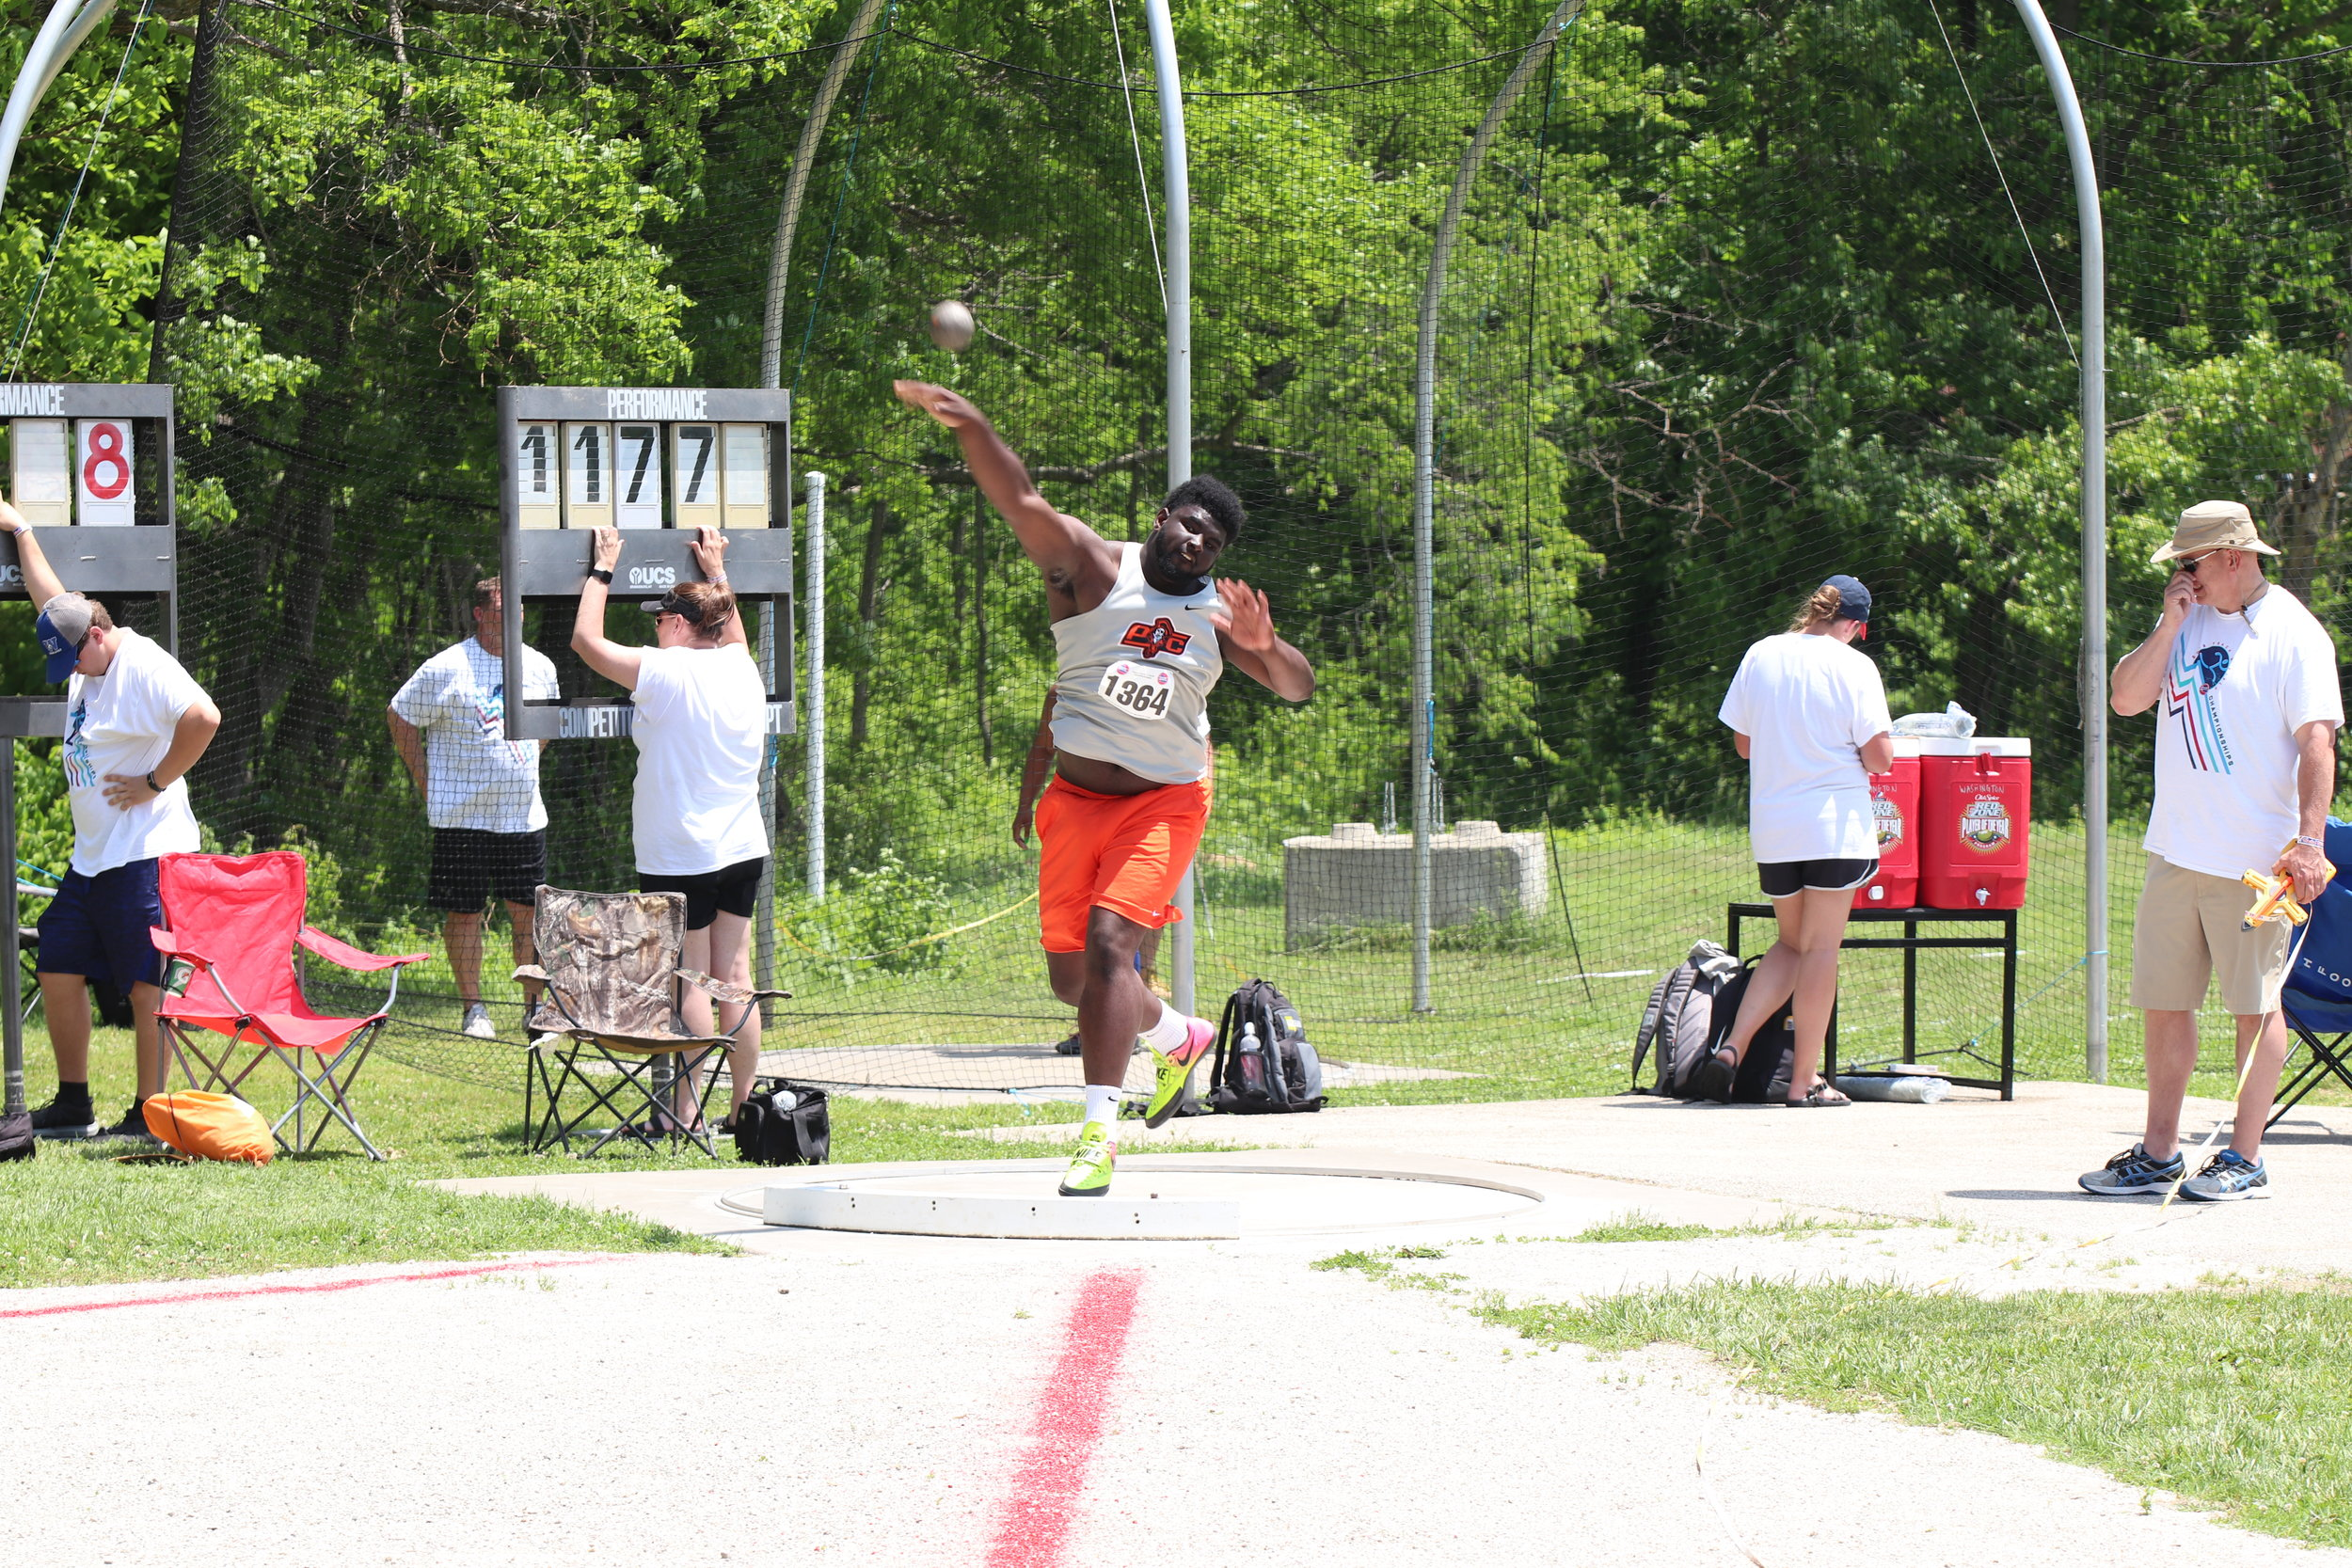 CODY THORN/Citizen photos  Platte County's Xavier Keith, left, finished second in the Class 4 shot put finals on Saturday, May 25 at Washington High School in Washington, Mo. He was leading the field after the first two flights.